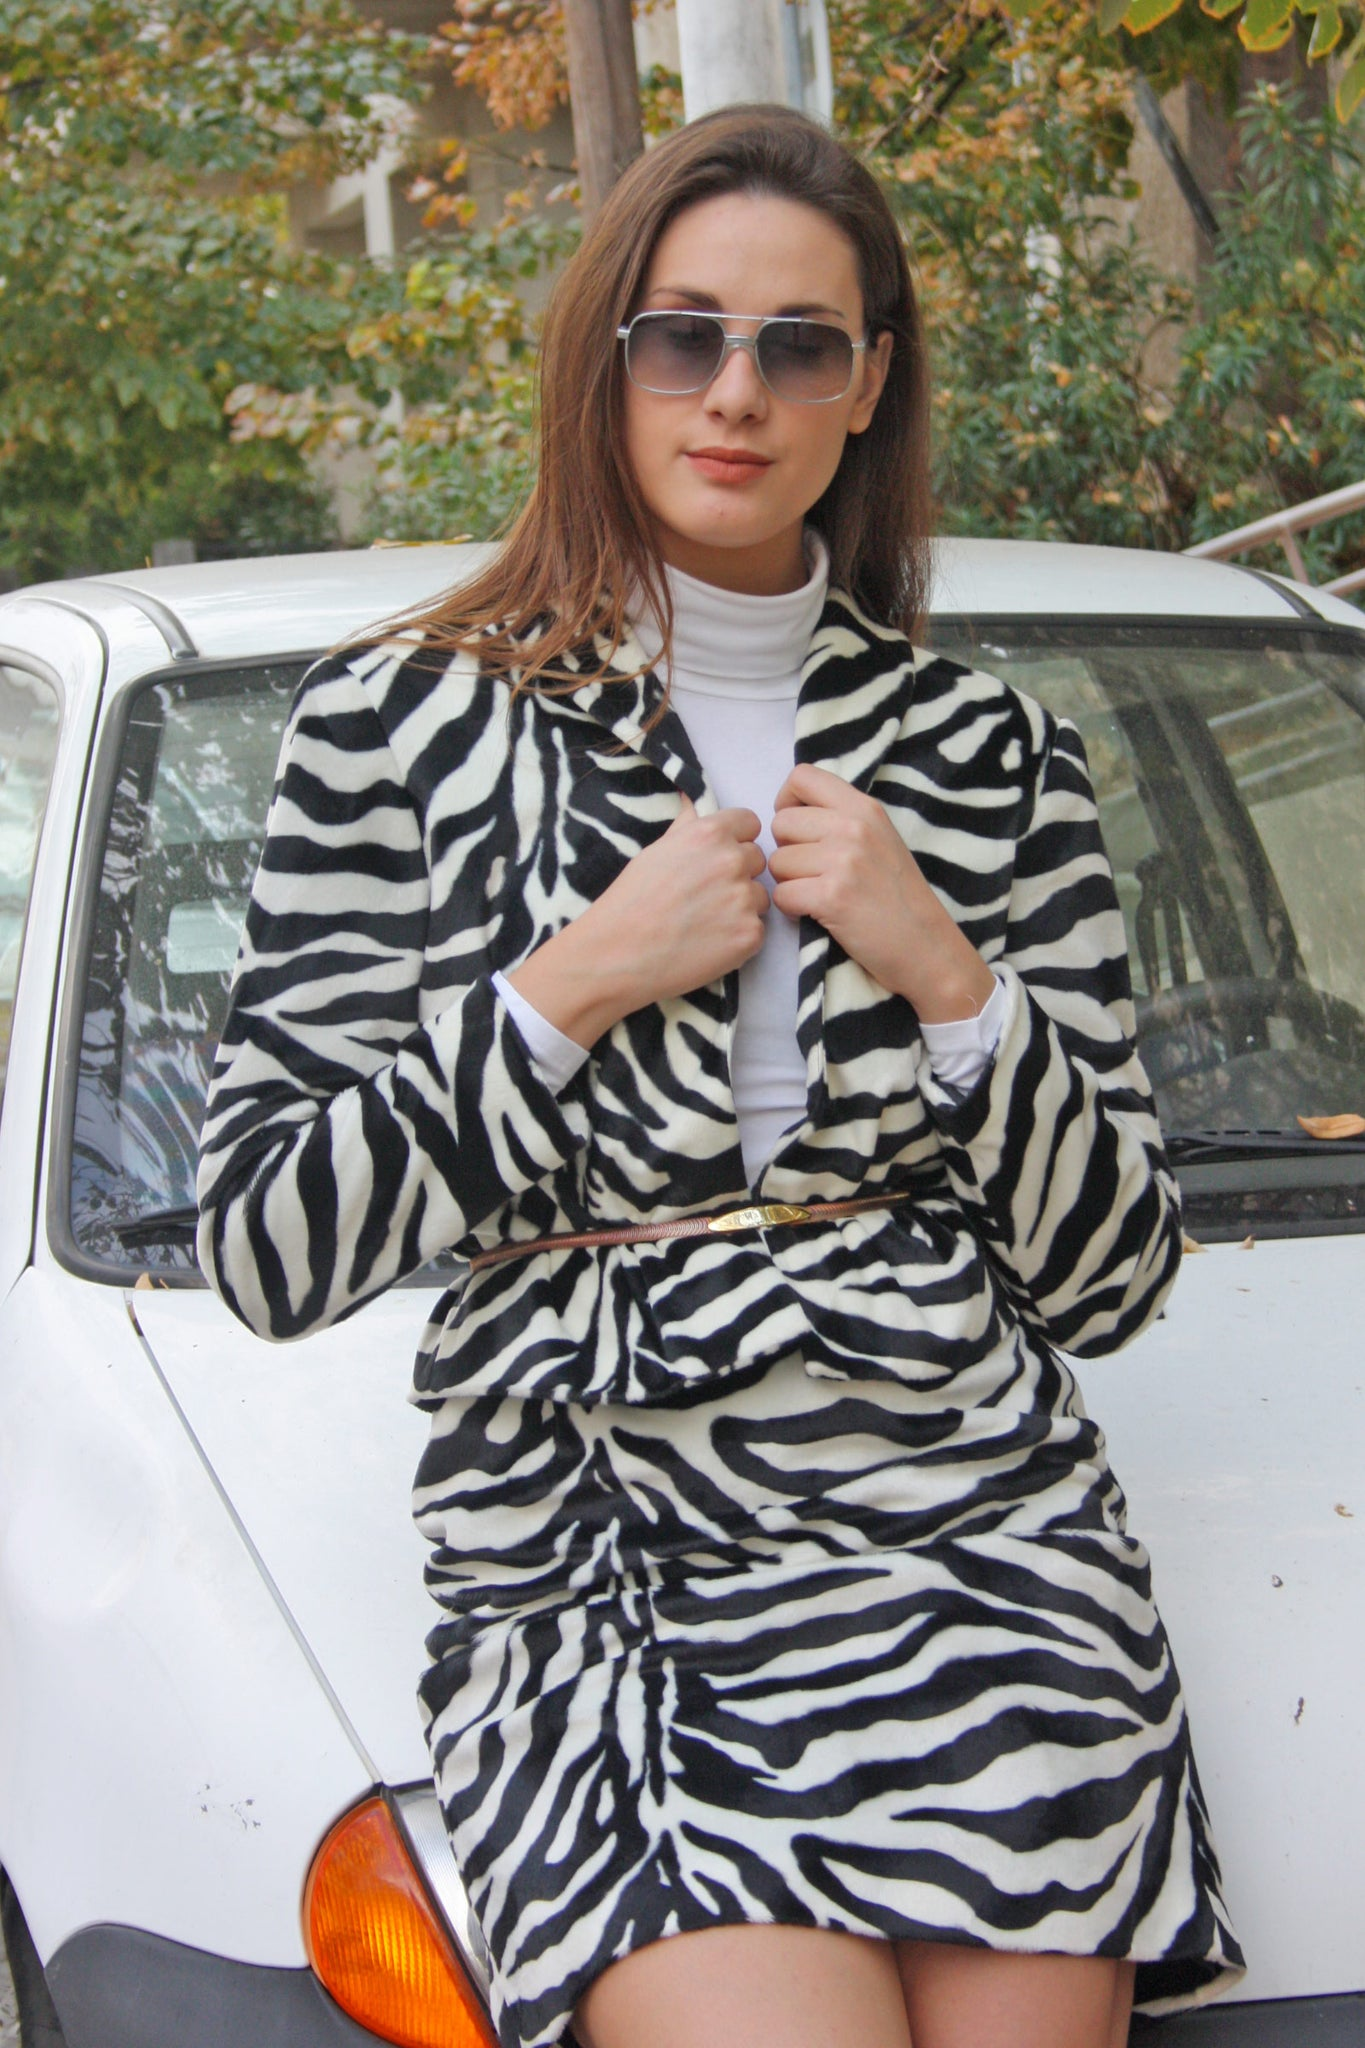 Veronique zebra suit